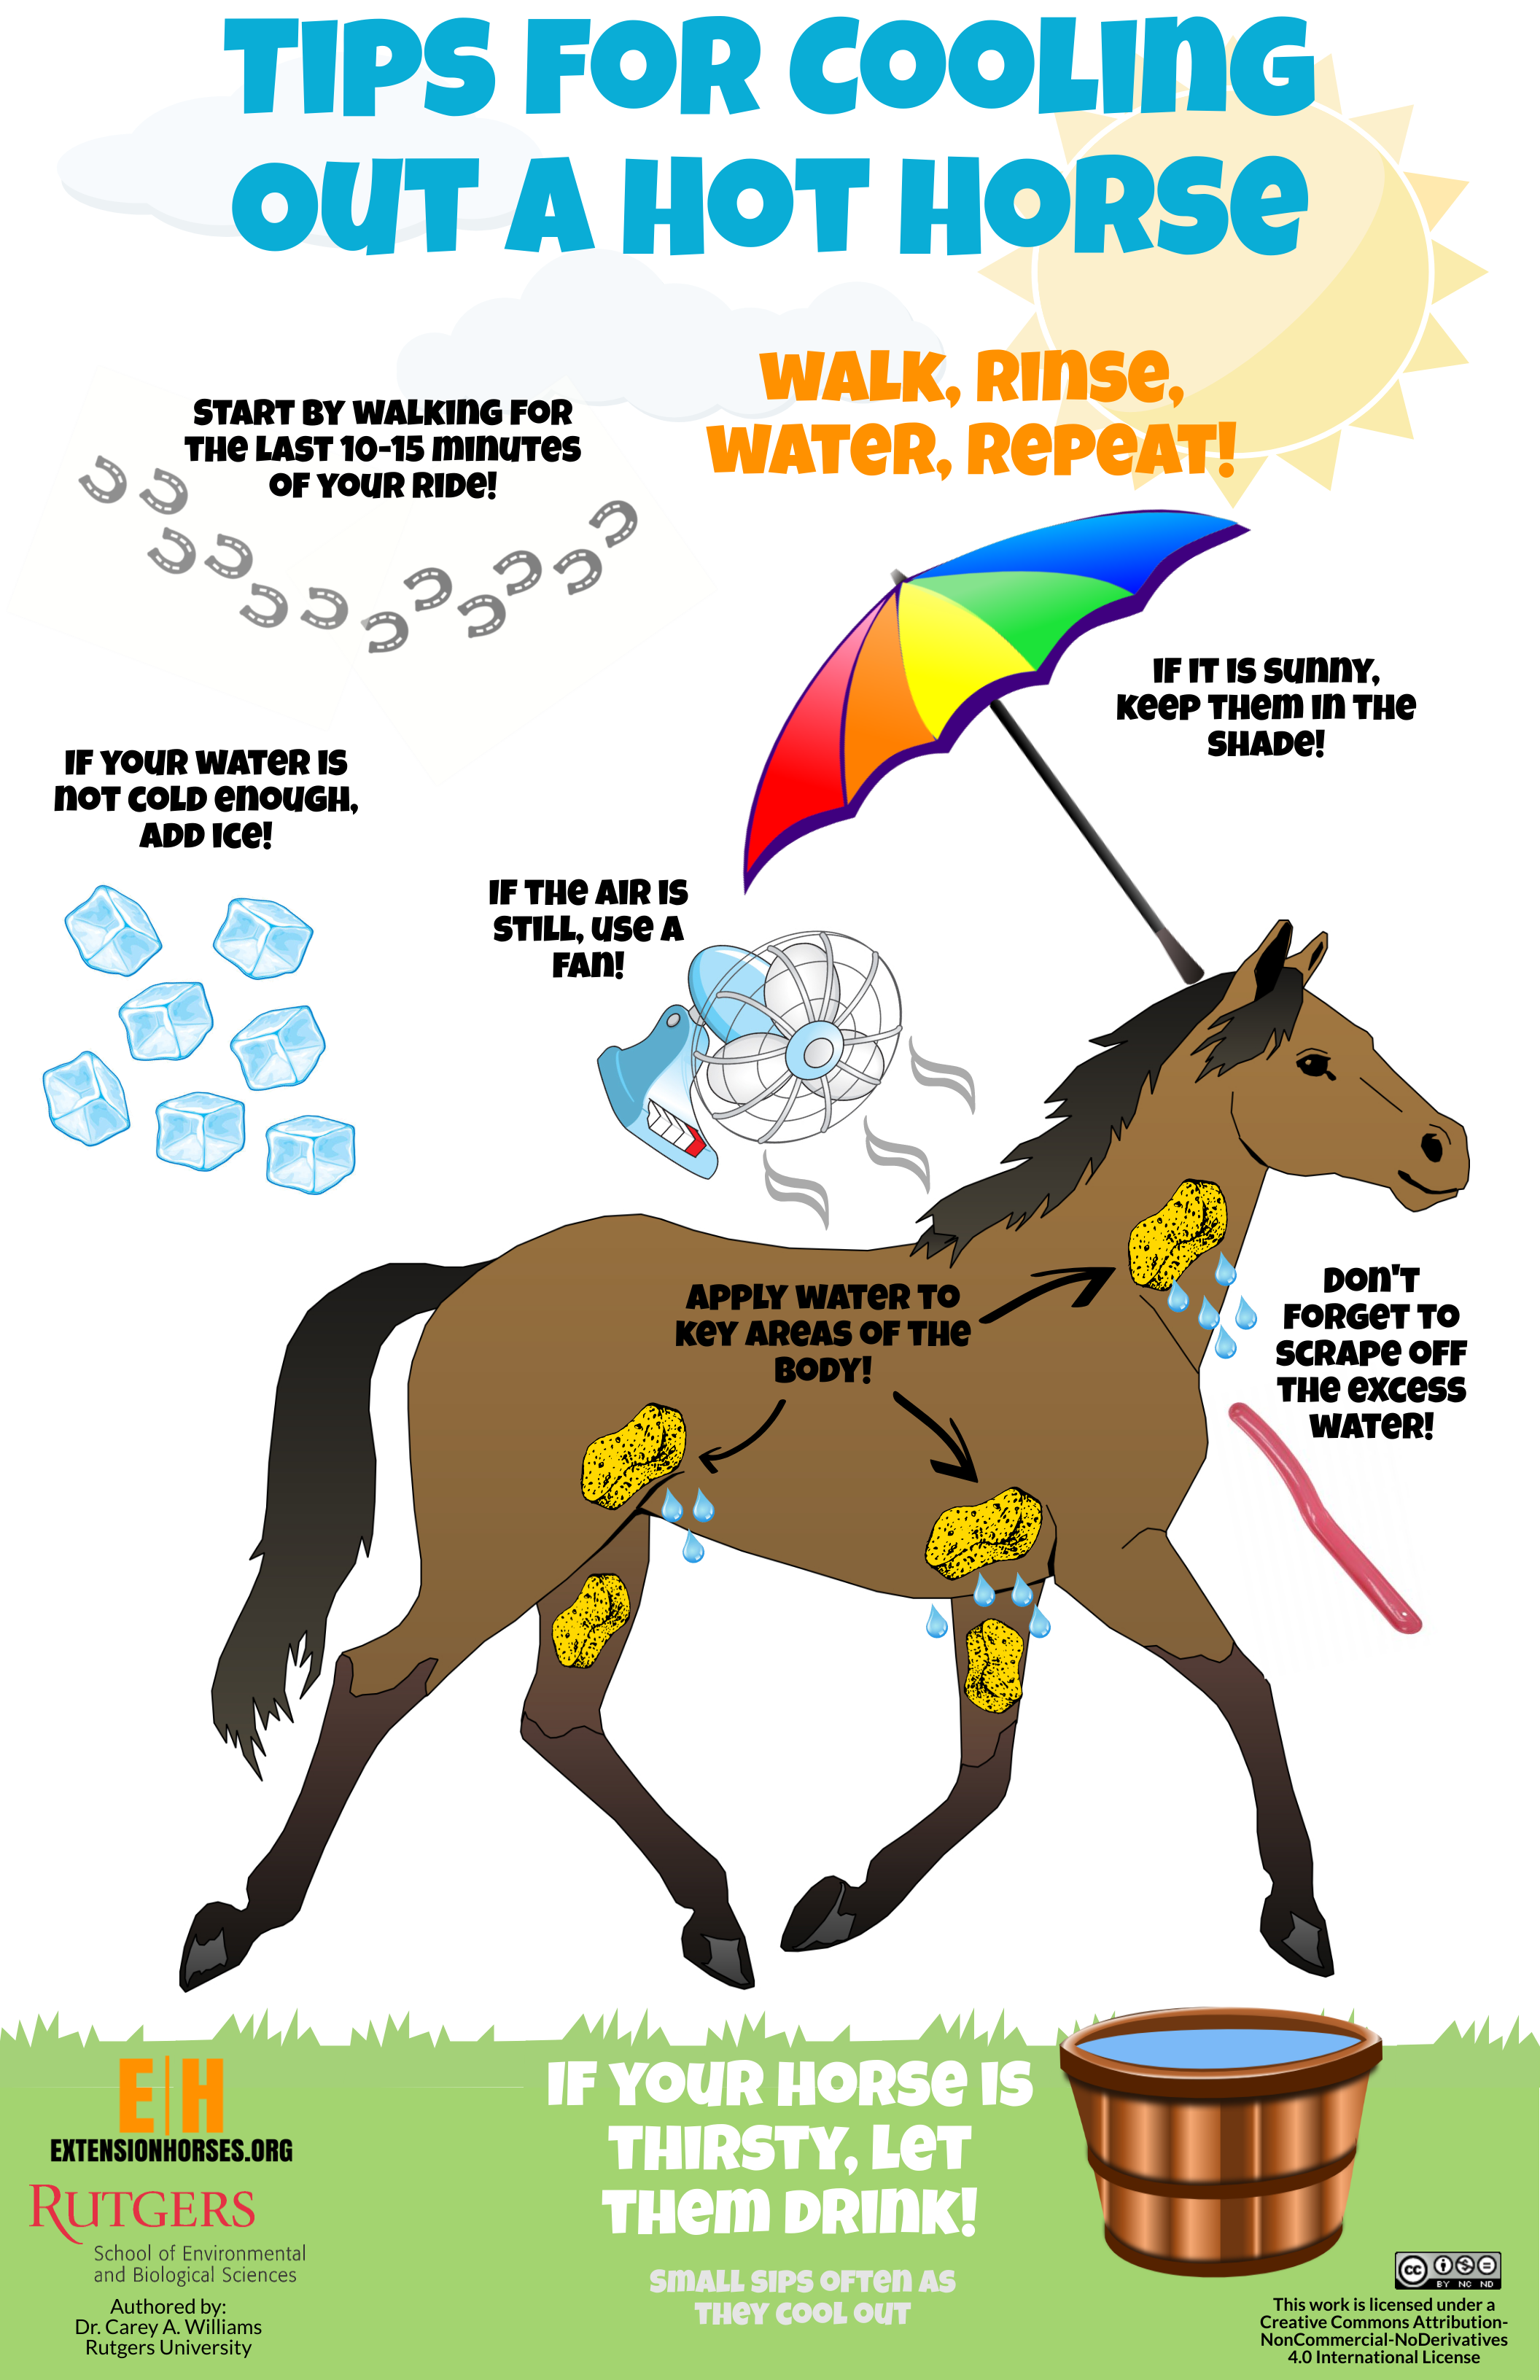 Tips for Cooling Out a Hot Horse